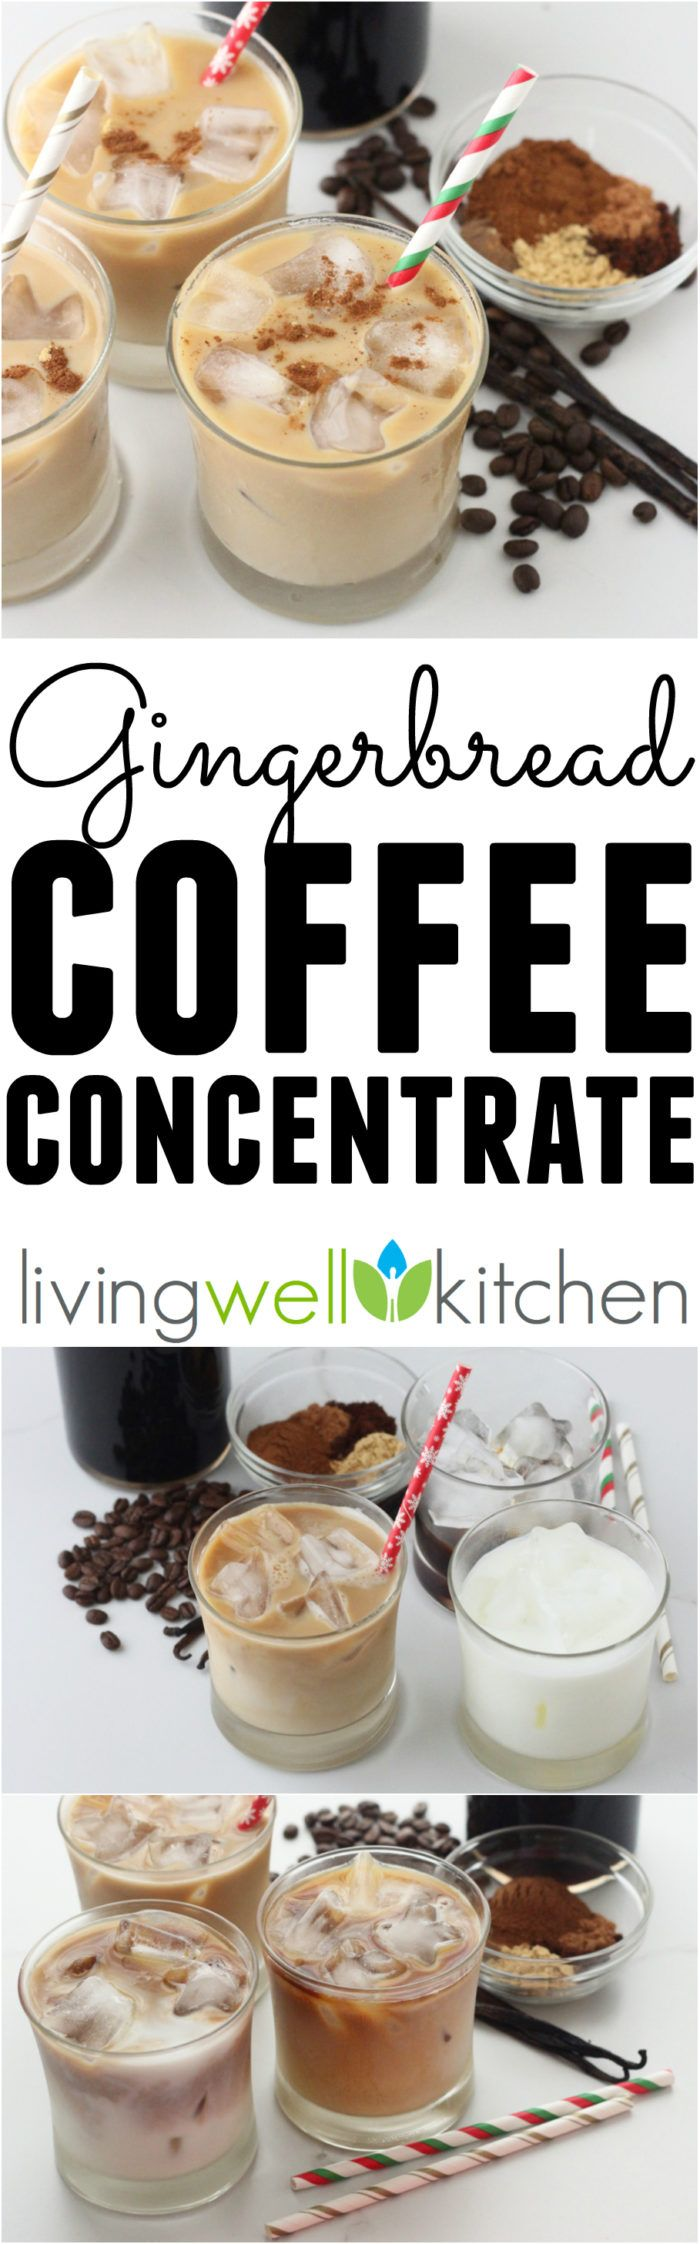 Enjoy the flavors of the Christmas season in this homemade holiday cold brew coffee. Gingerbread Coffee Concentrate recipe from @memeinge is great for making hot or iced lattes and perfect for gifting to others